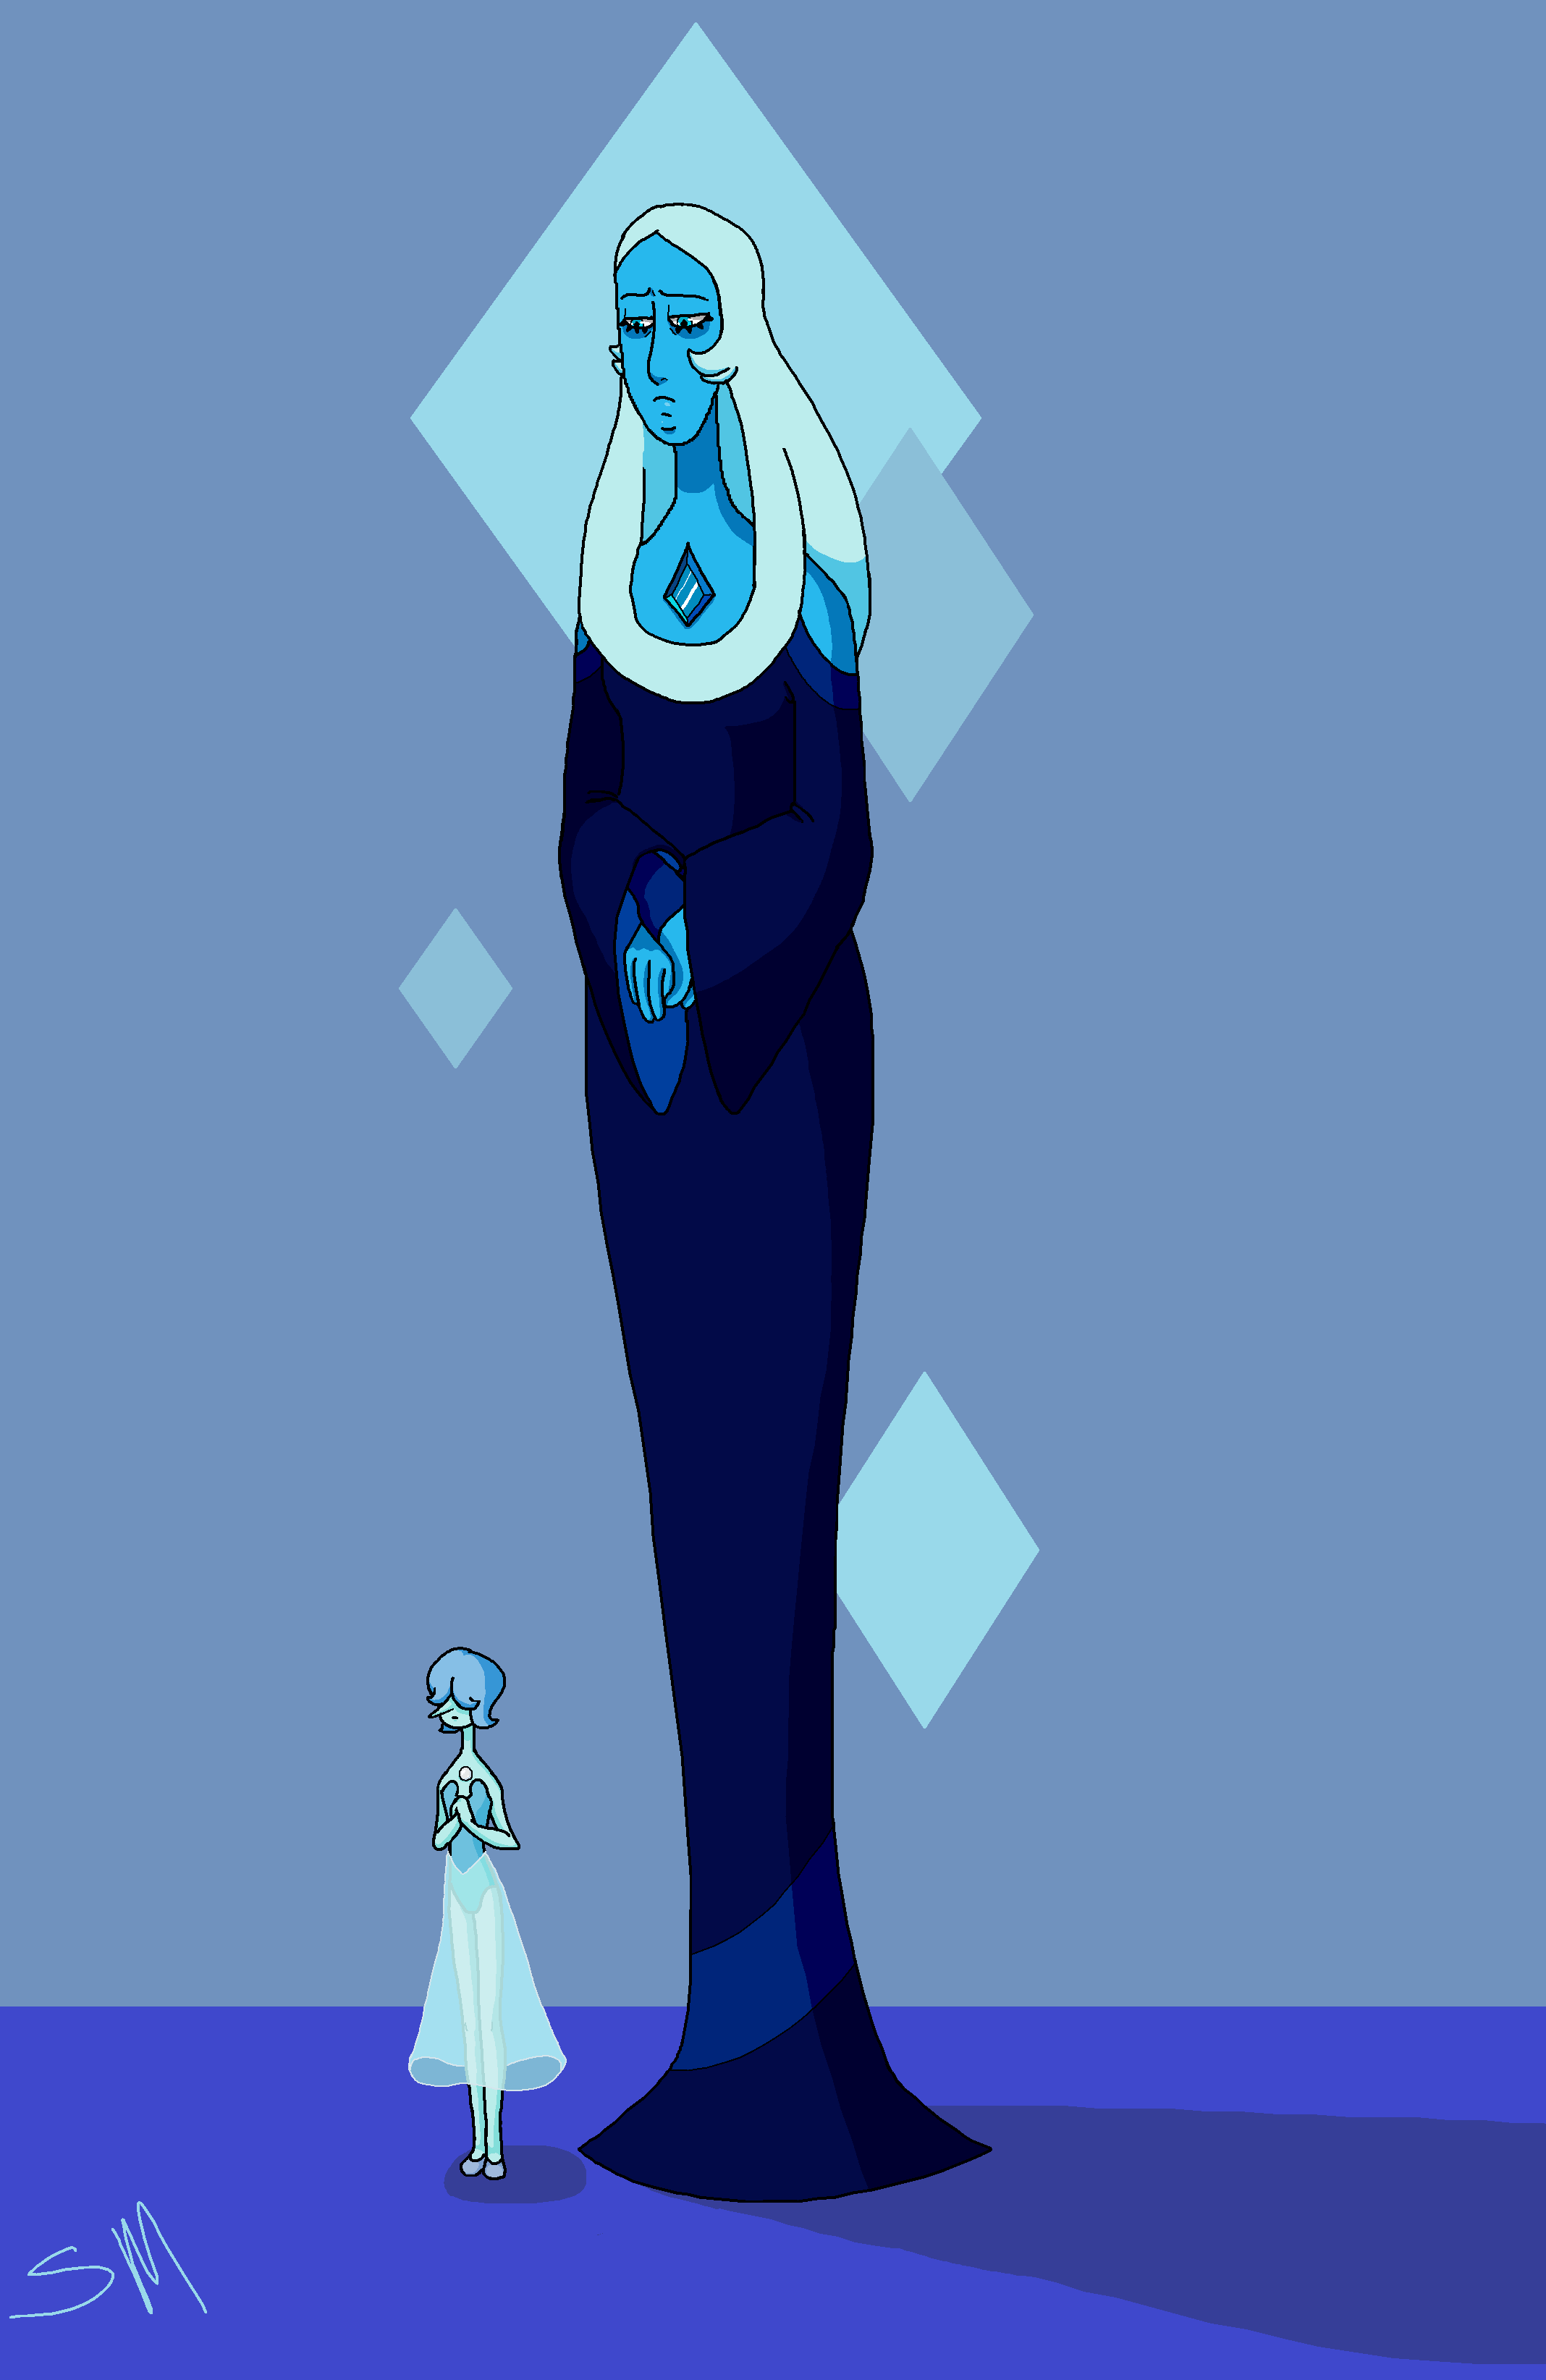 blue diamond elegantladyalex on deviantart art by